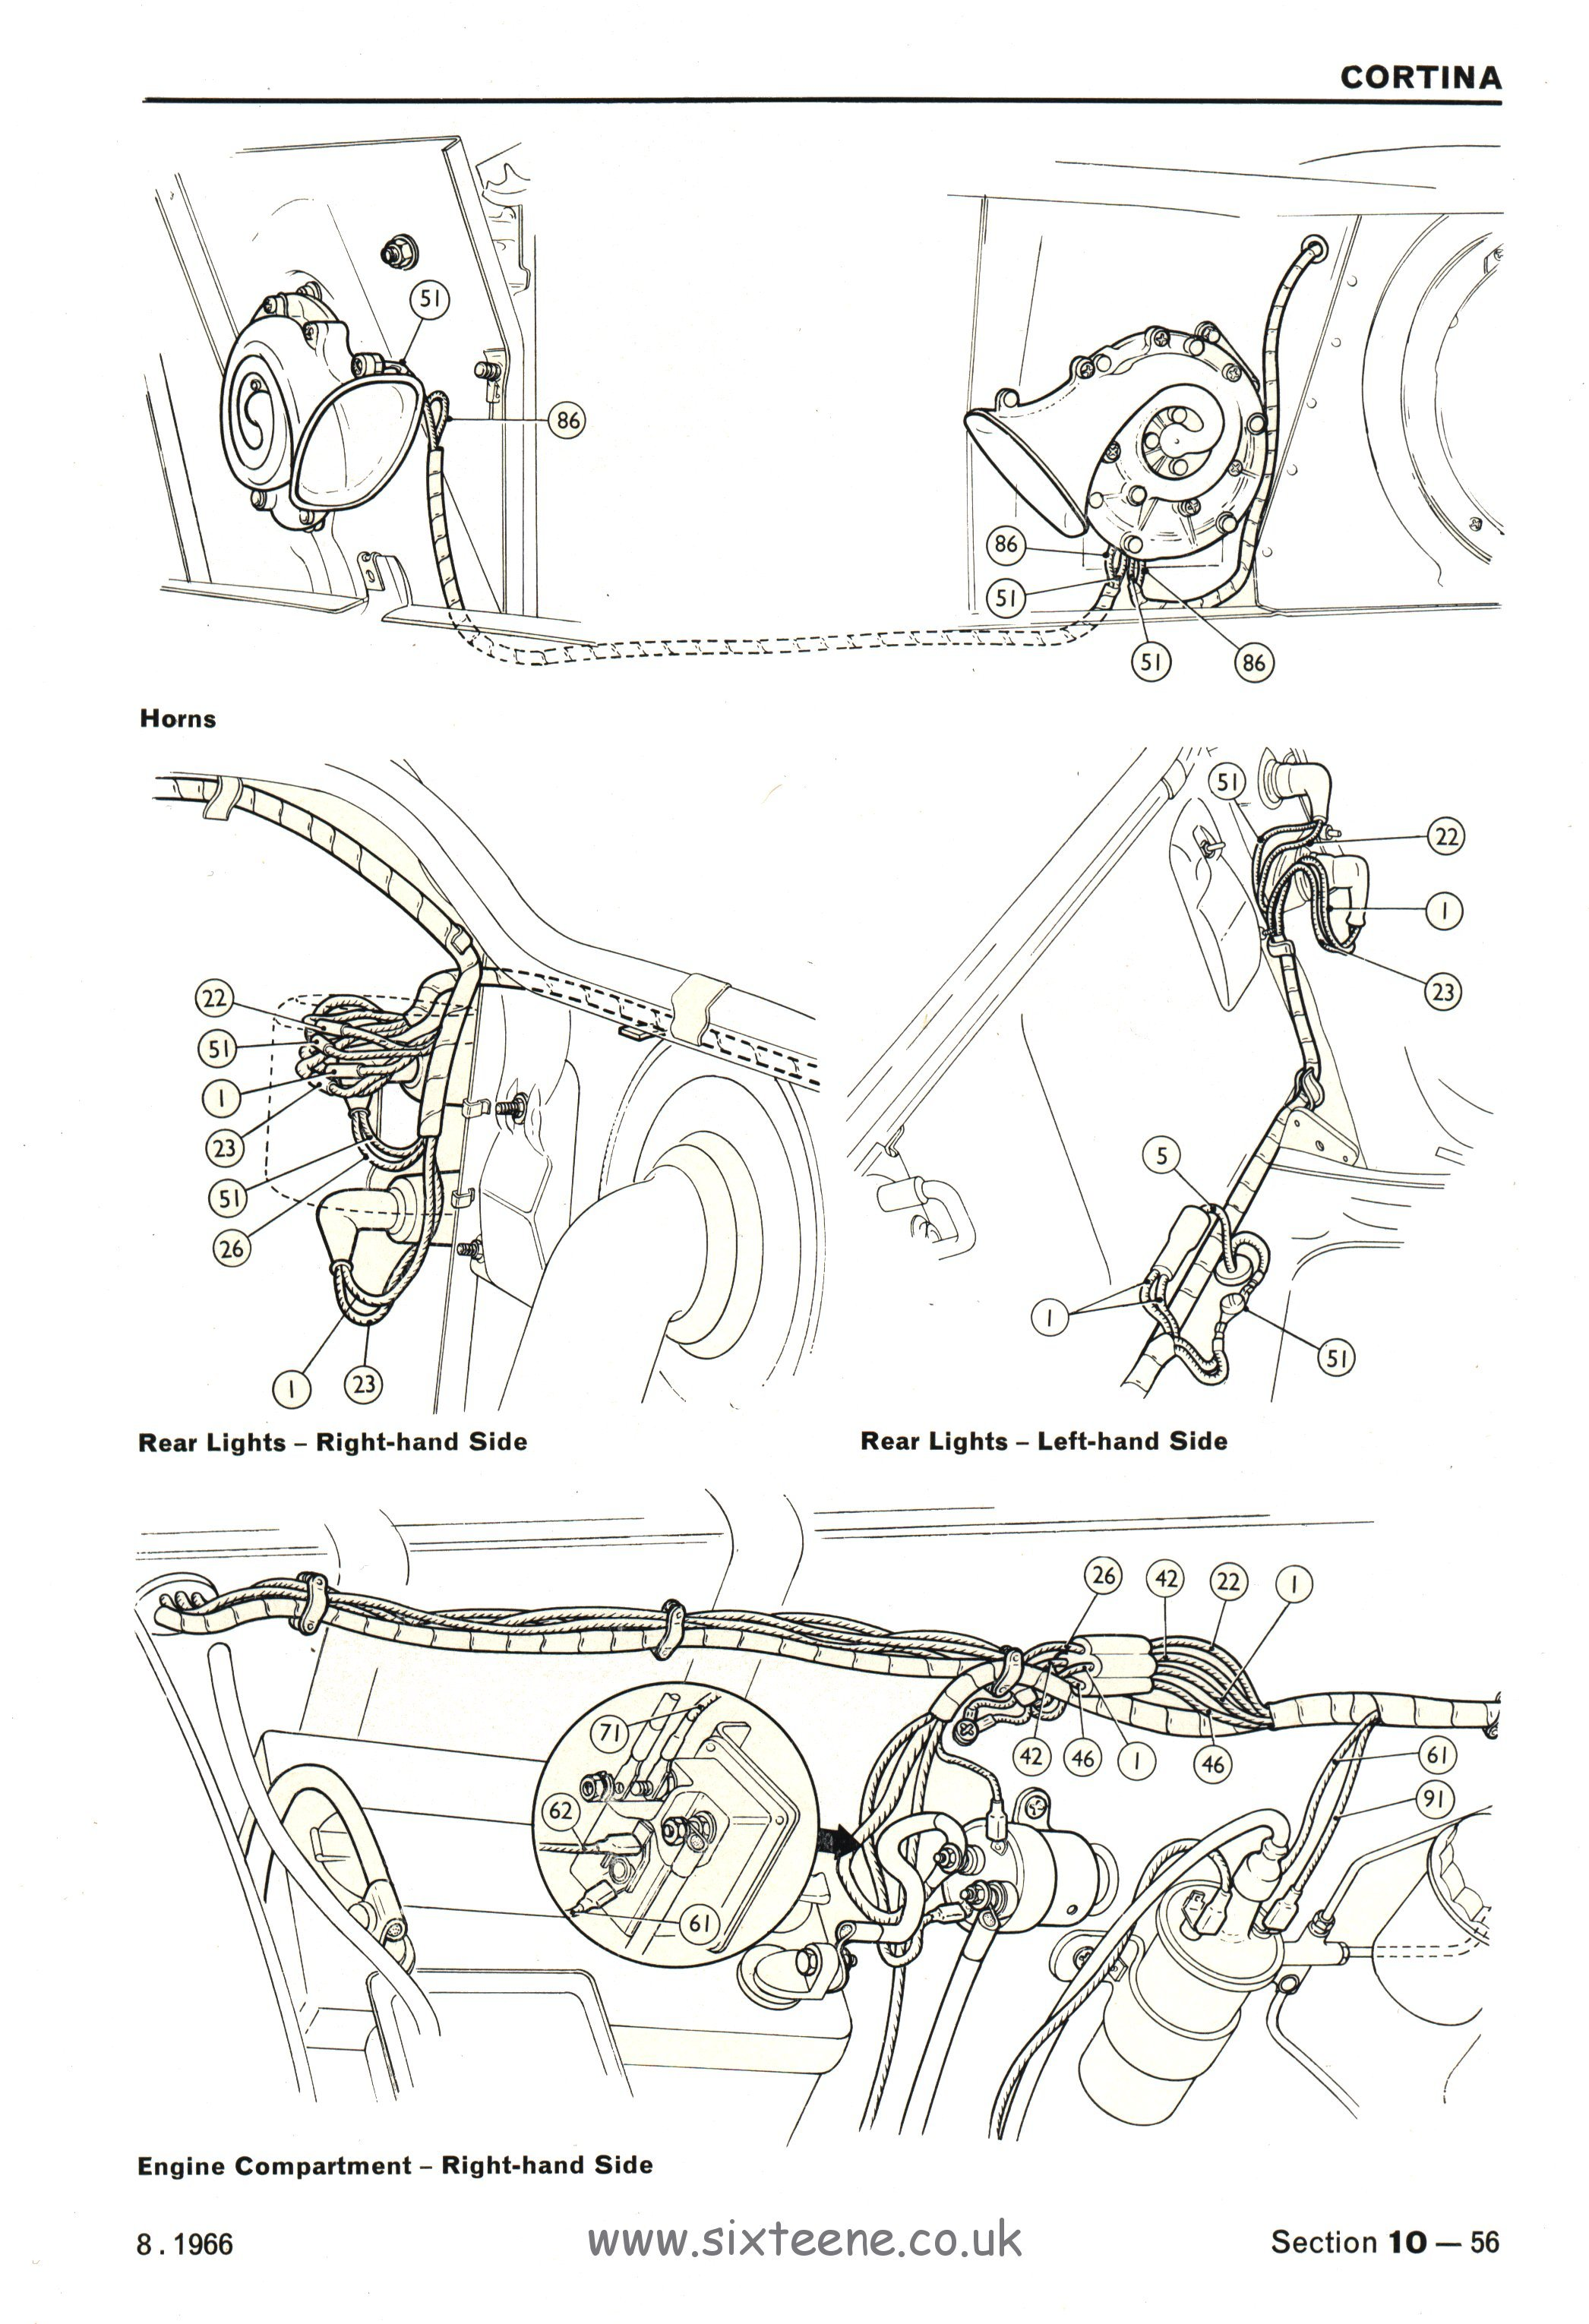 Full A3 Foldout Wiring Diagrams Mk2 Cortina Standard